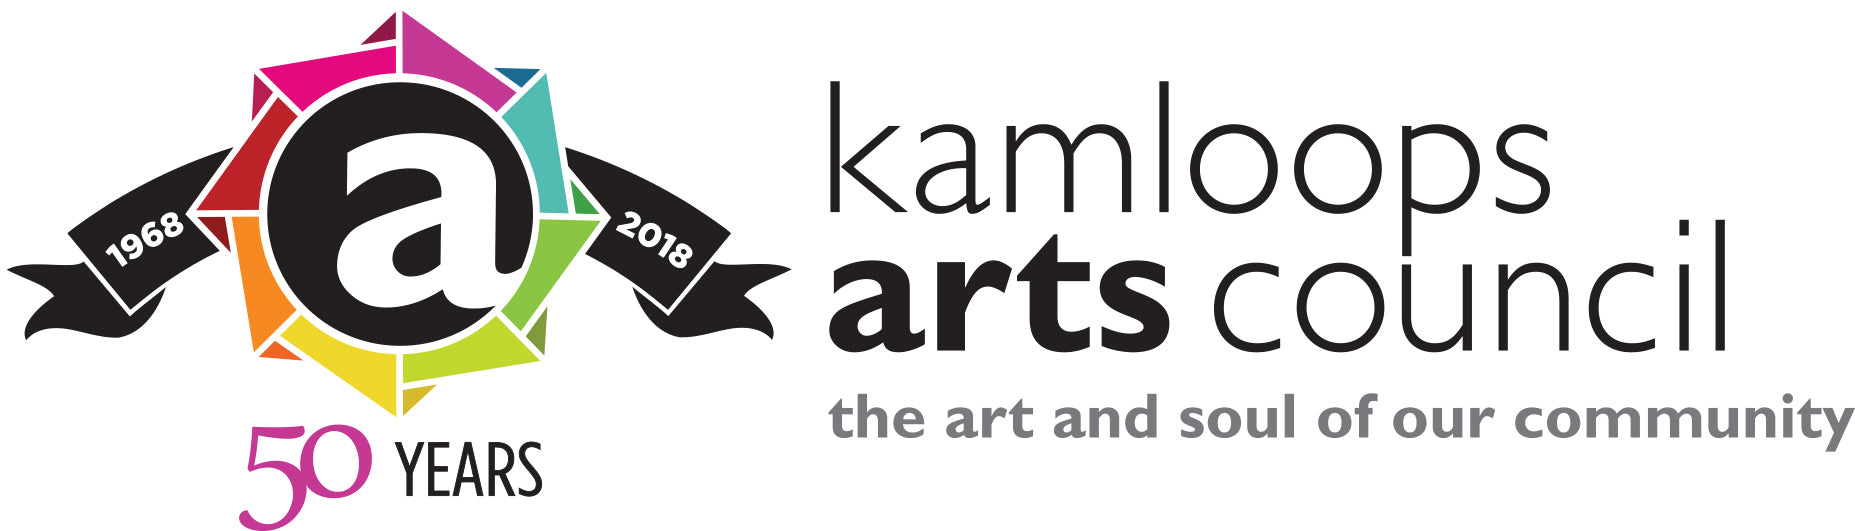 FUNDRAISER - Kamloops Arts Council